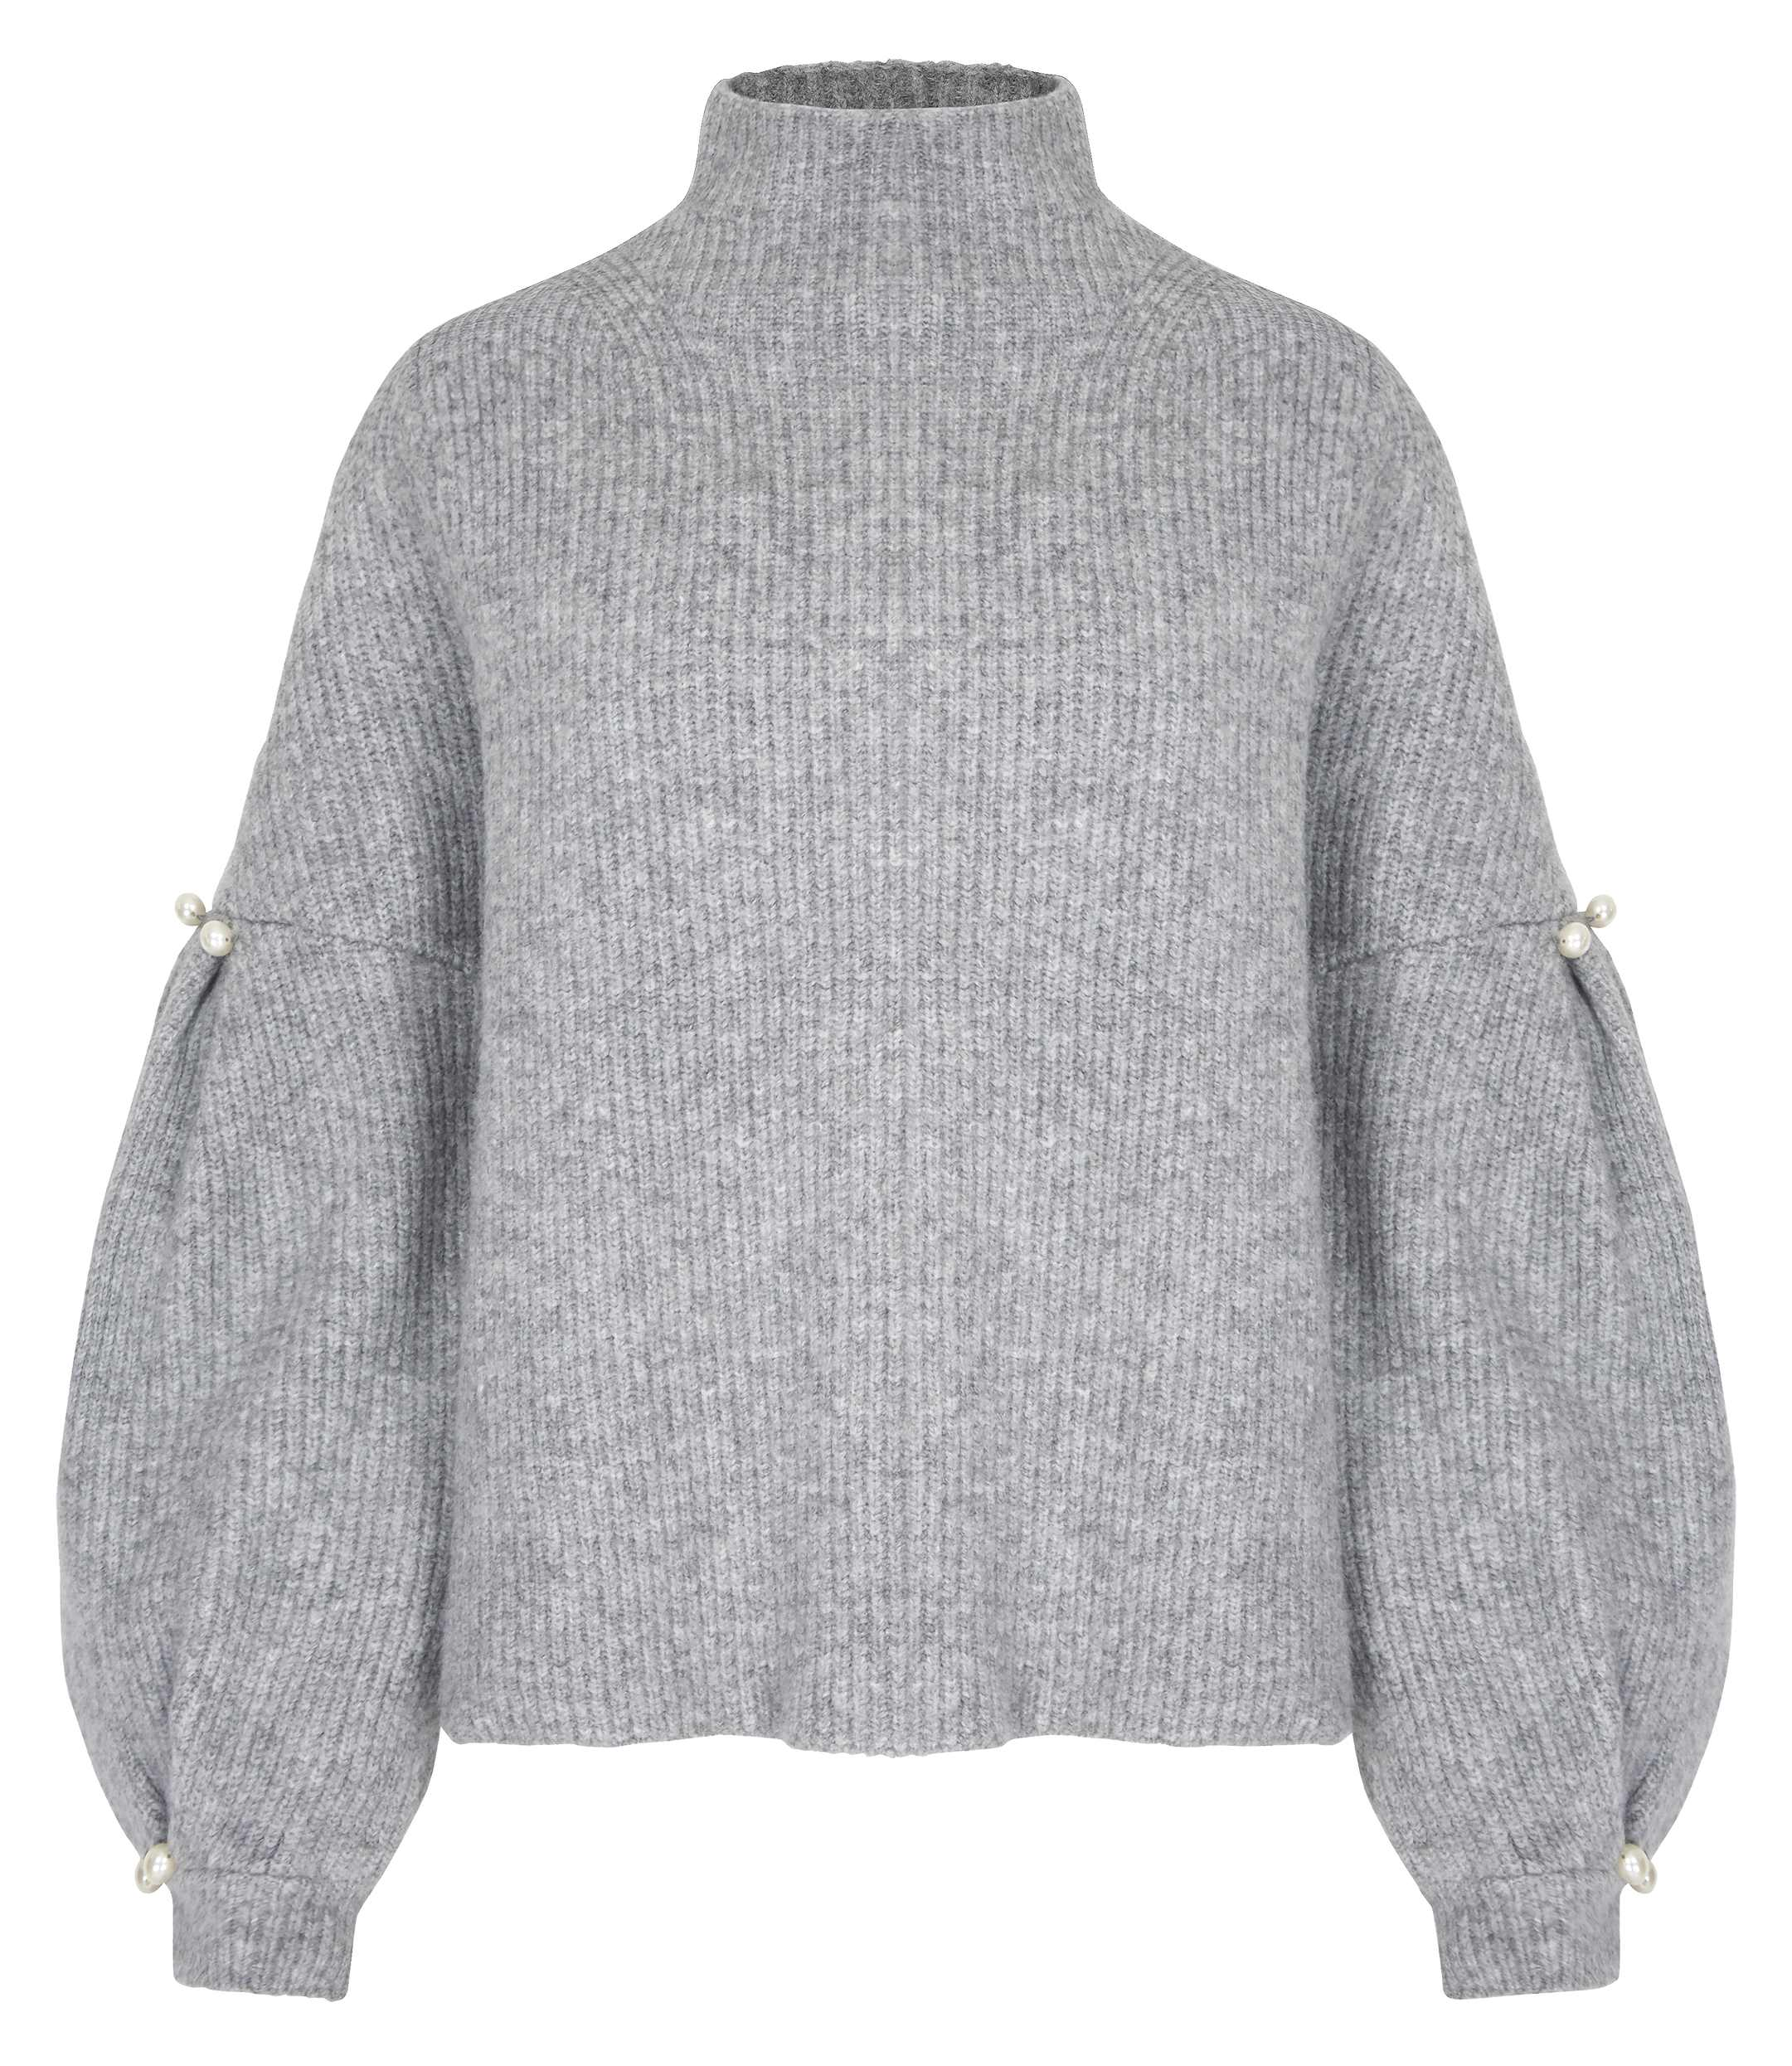 9 Statement Knits That Are Snuggly And Stylish